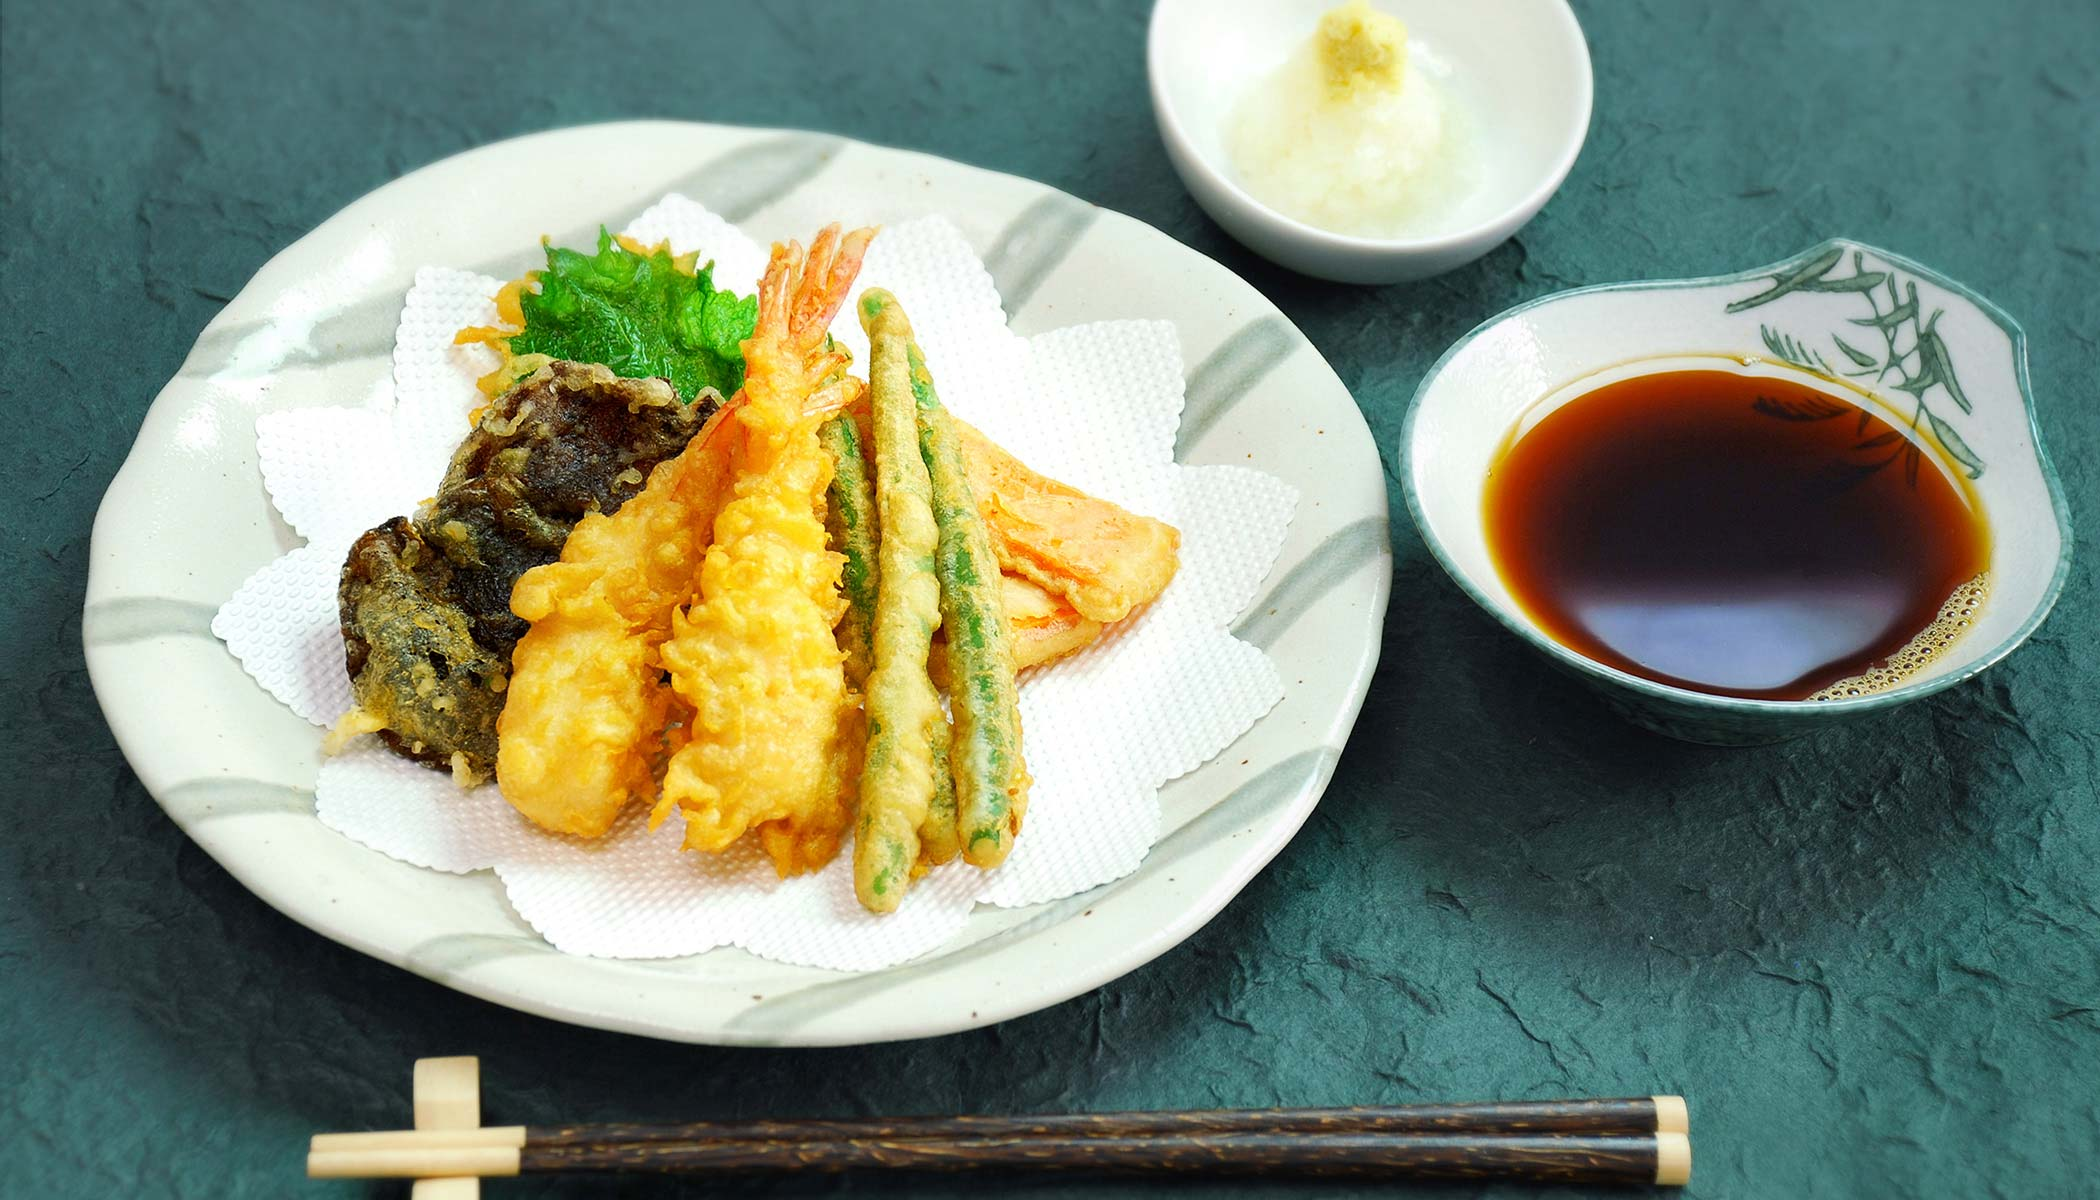 <i>Tempura</i> (Battered and Deep Fried Vegetable and Seafood)